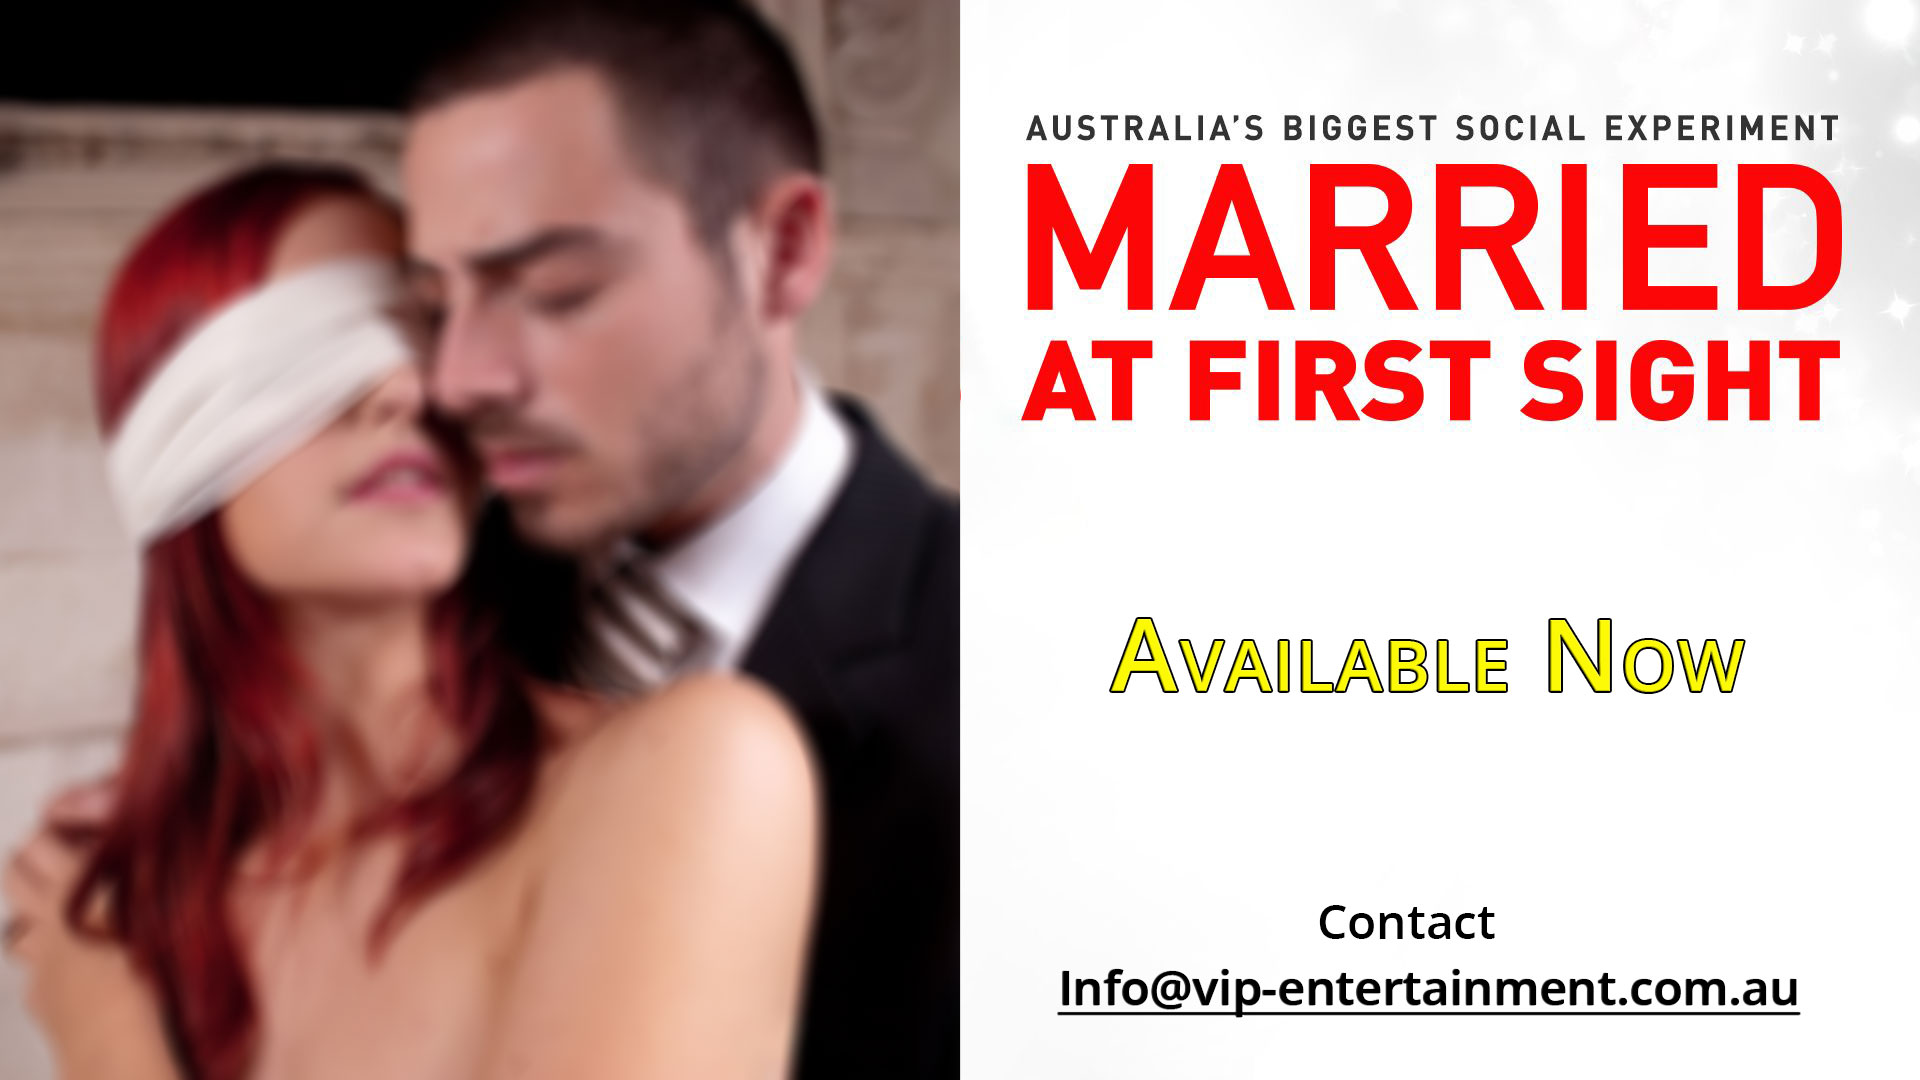 Married At First Sight cast available now